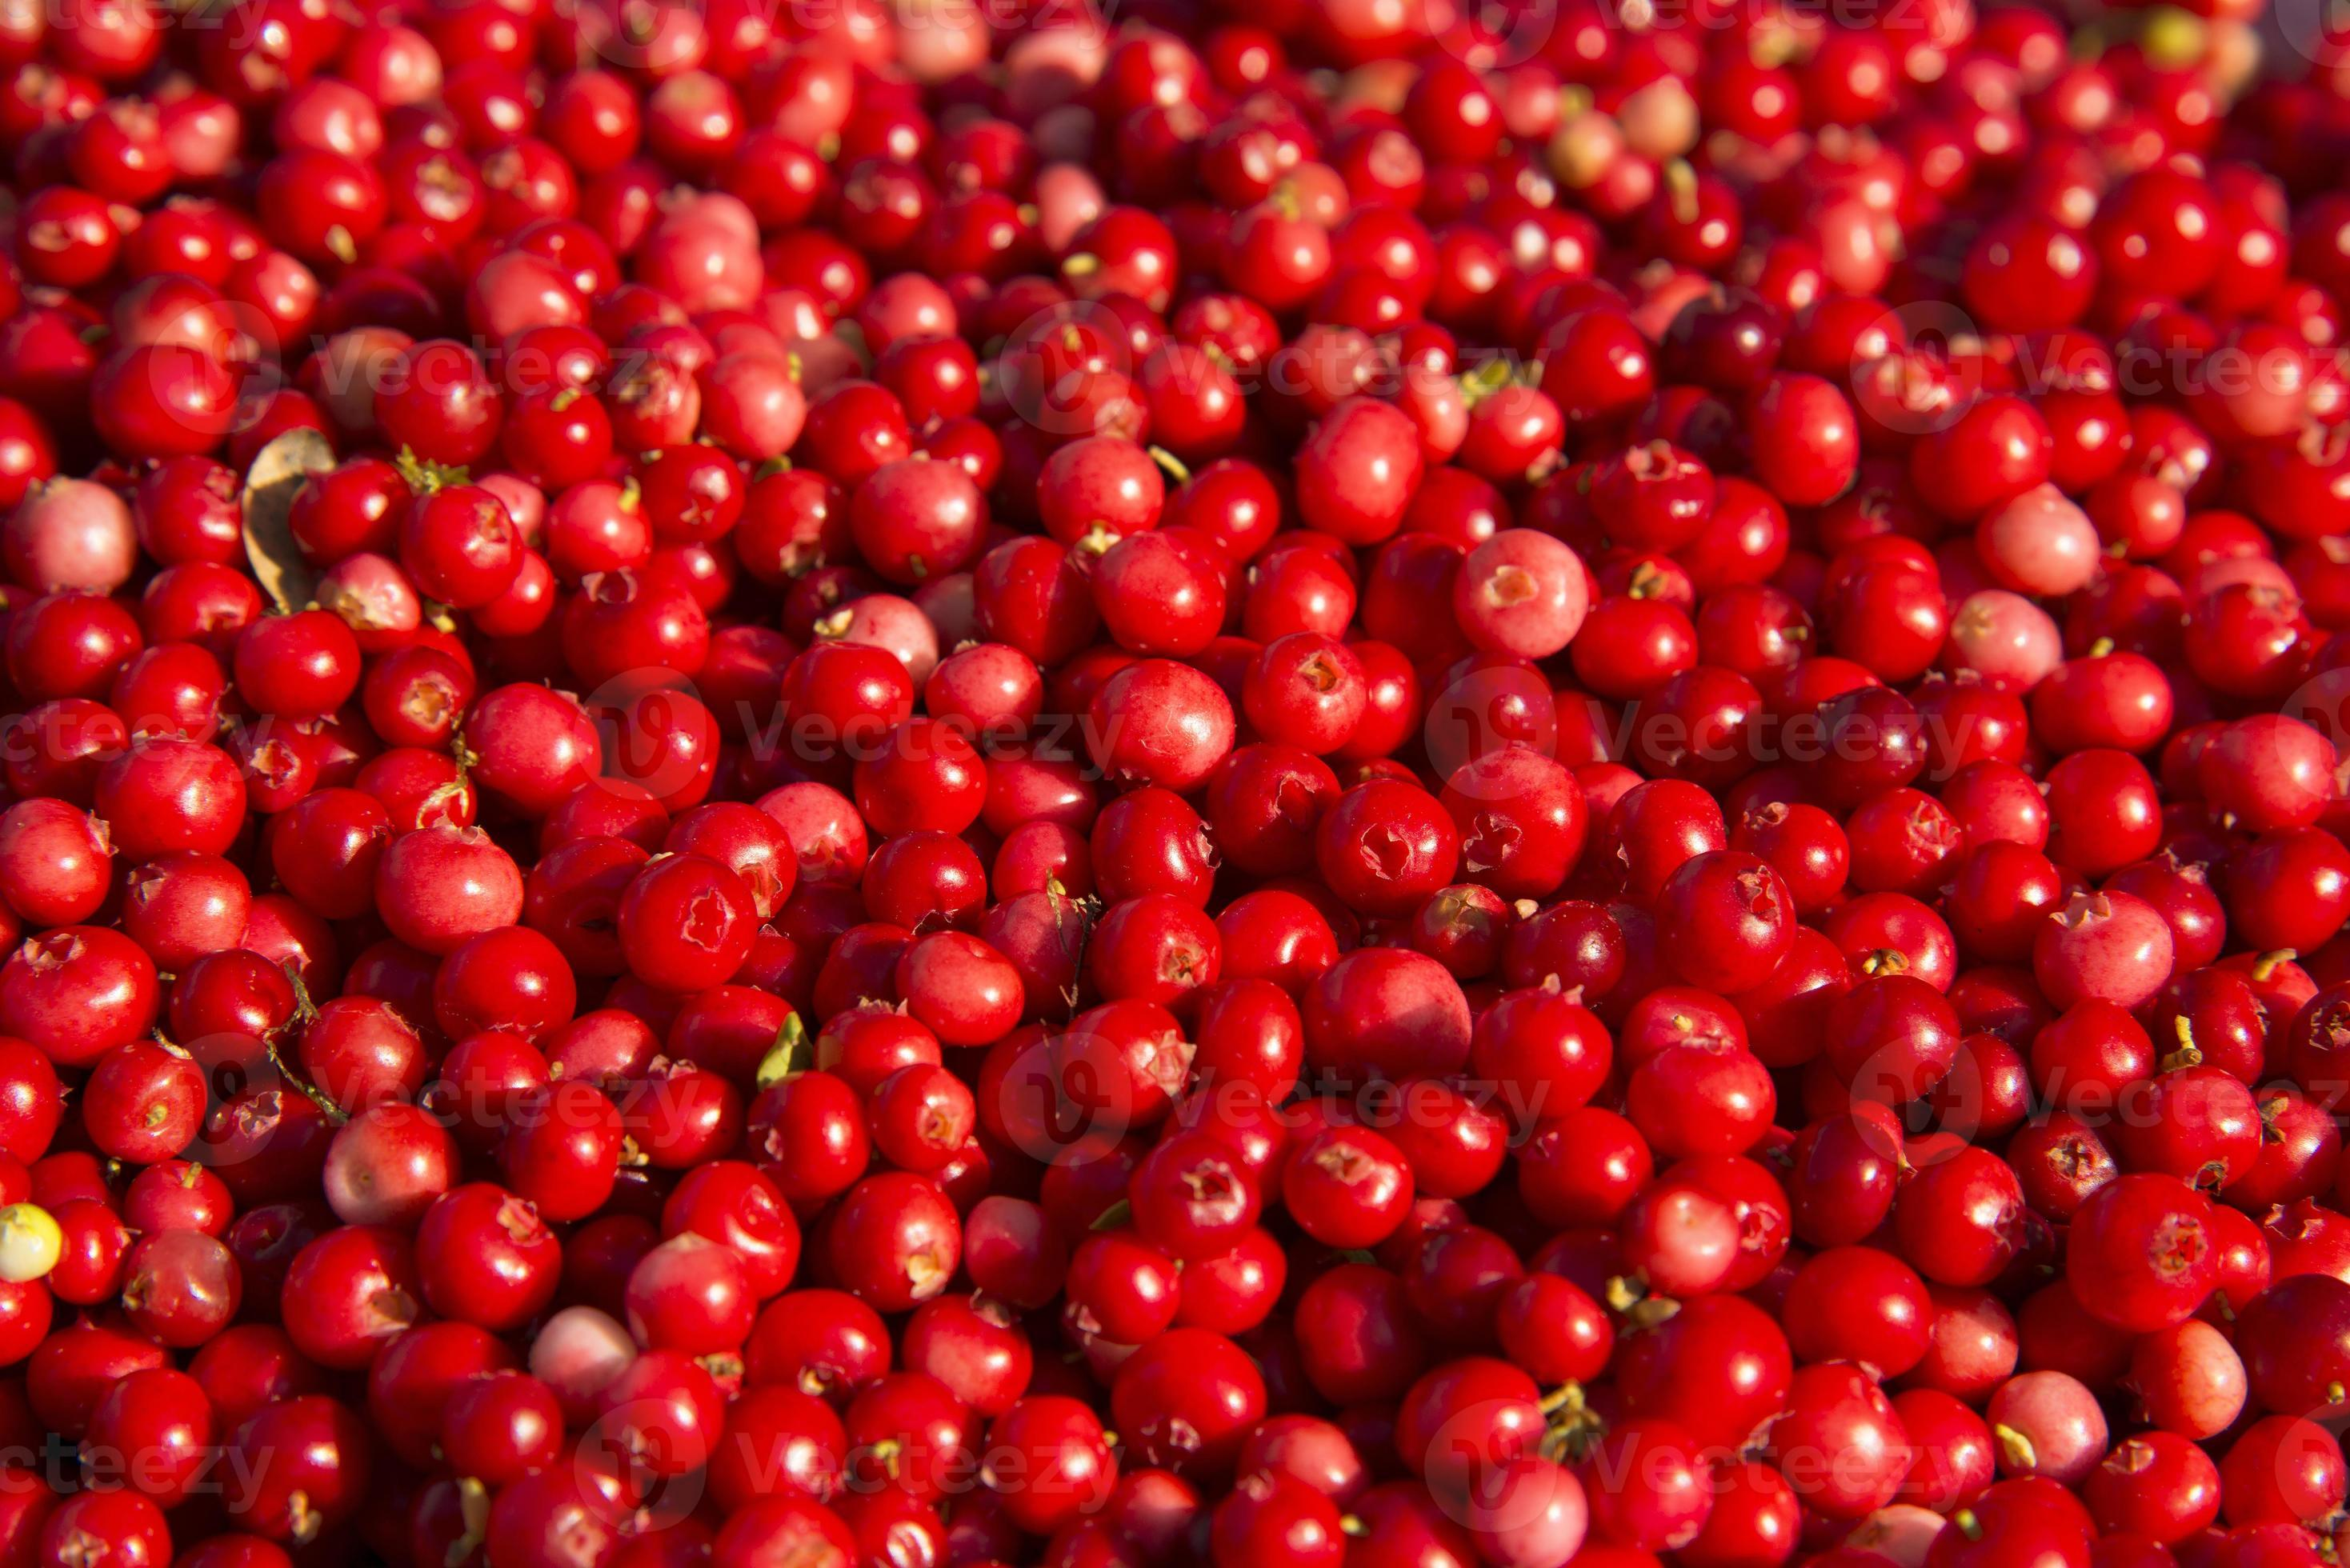 Rich harvest of wild cowberries. 32 Stock Photo at Vecteezy